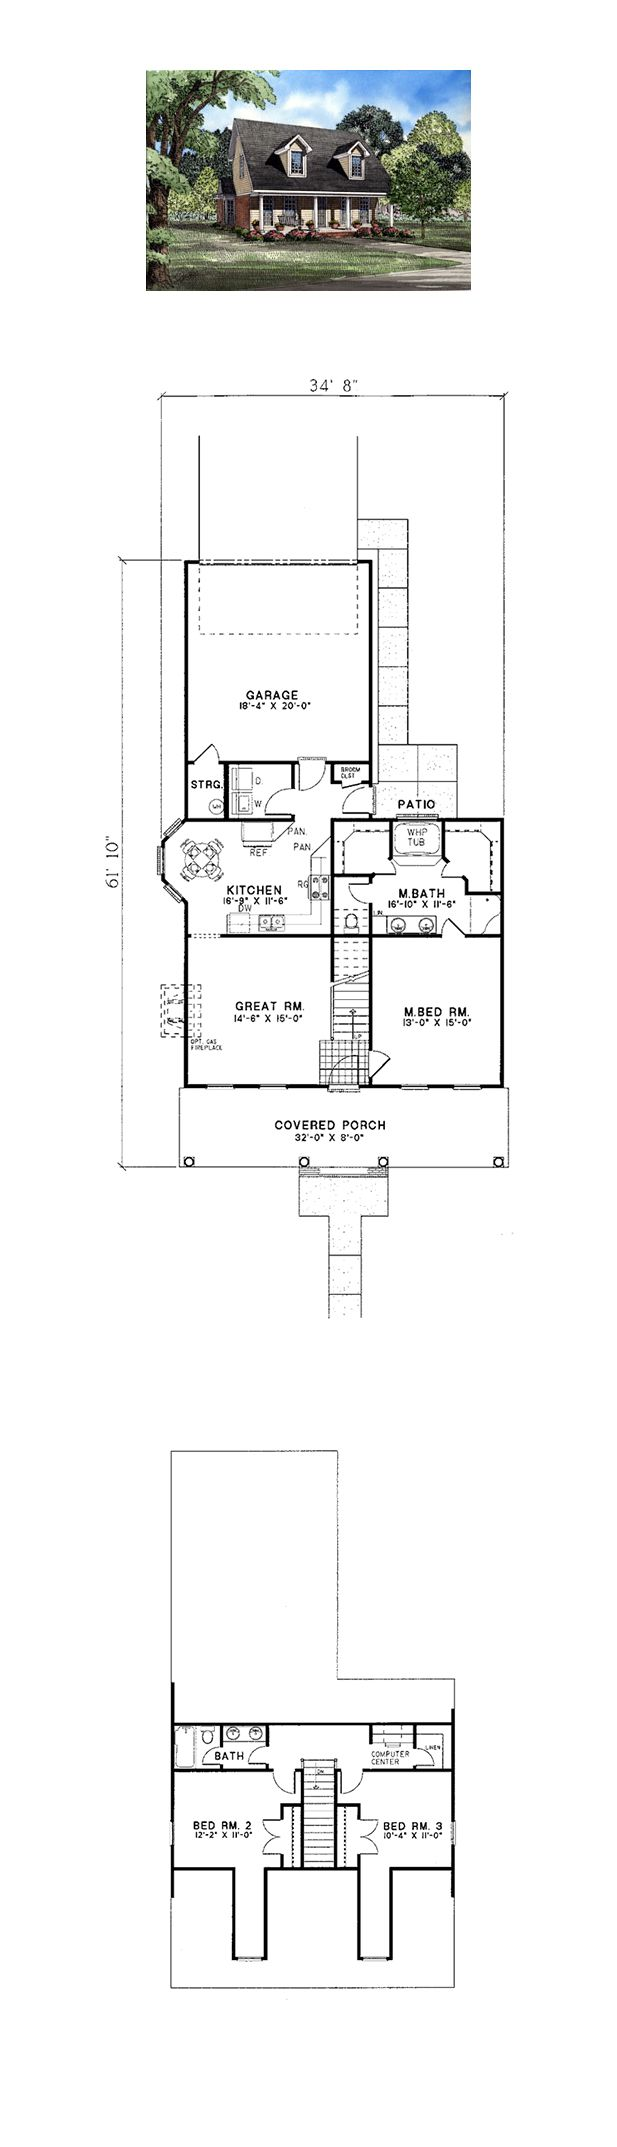 Cape cod country house plan 82030 pinterest house for Cape cod house plans with basement